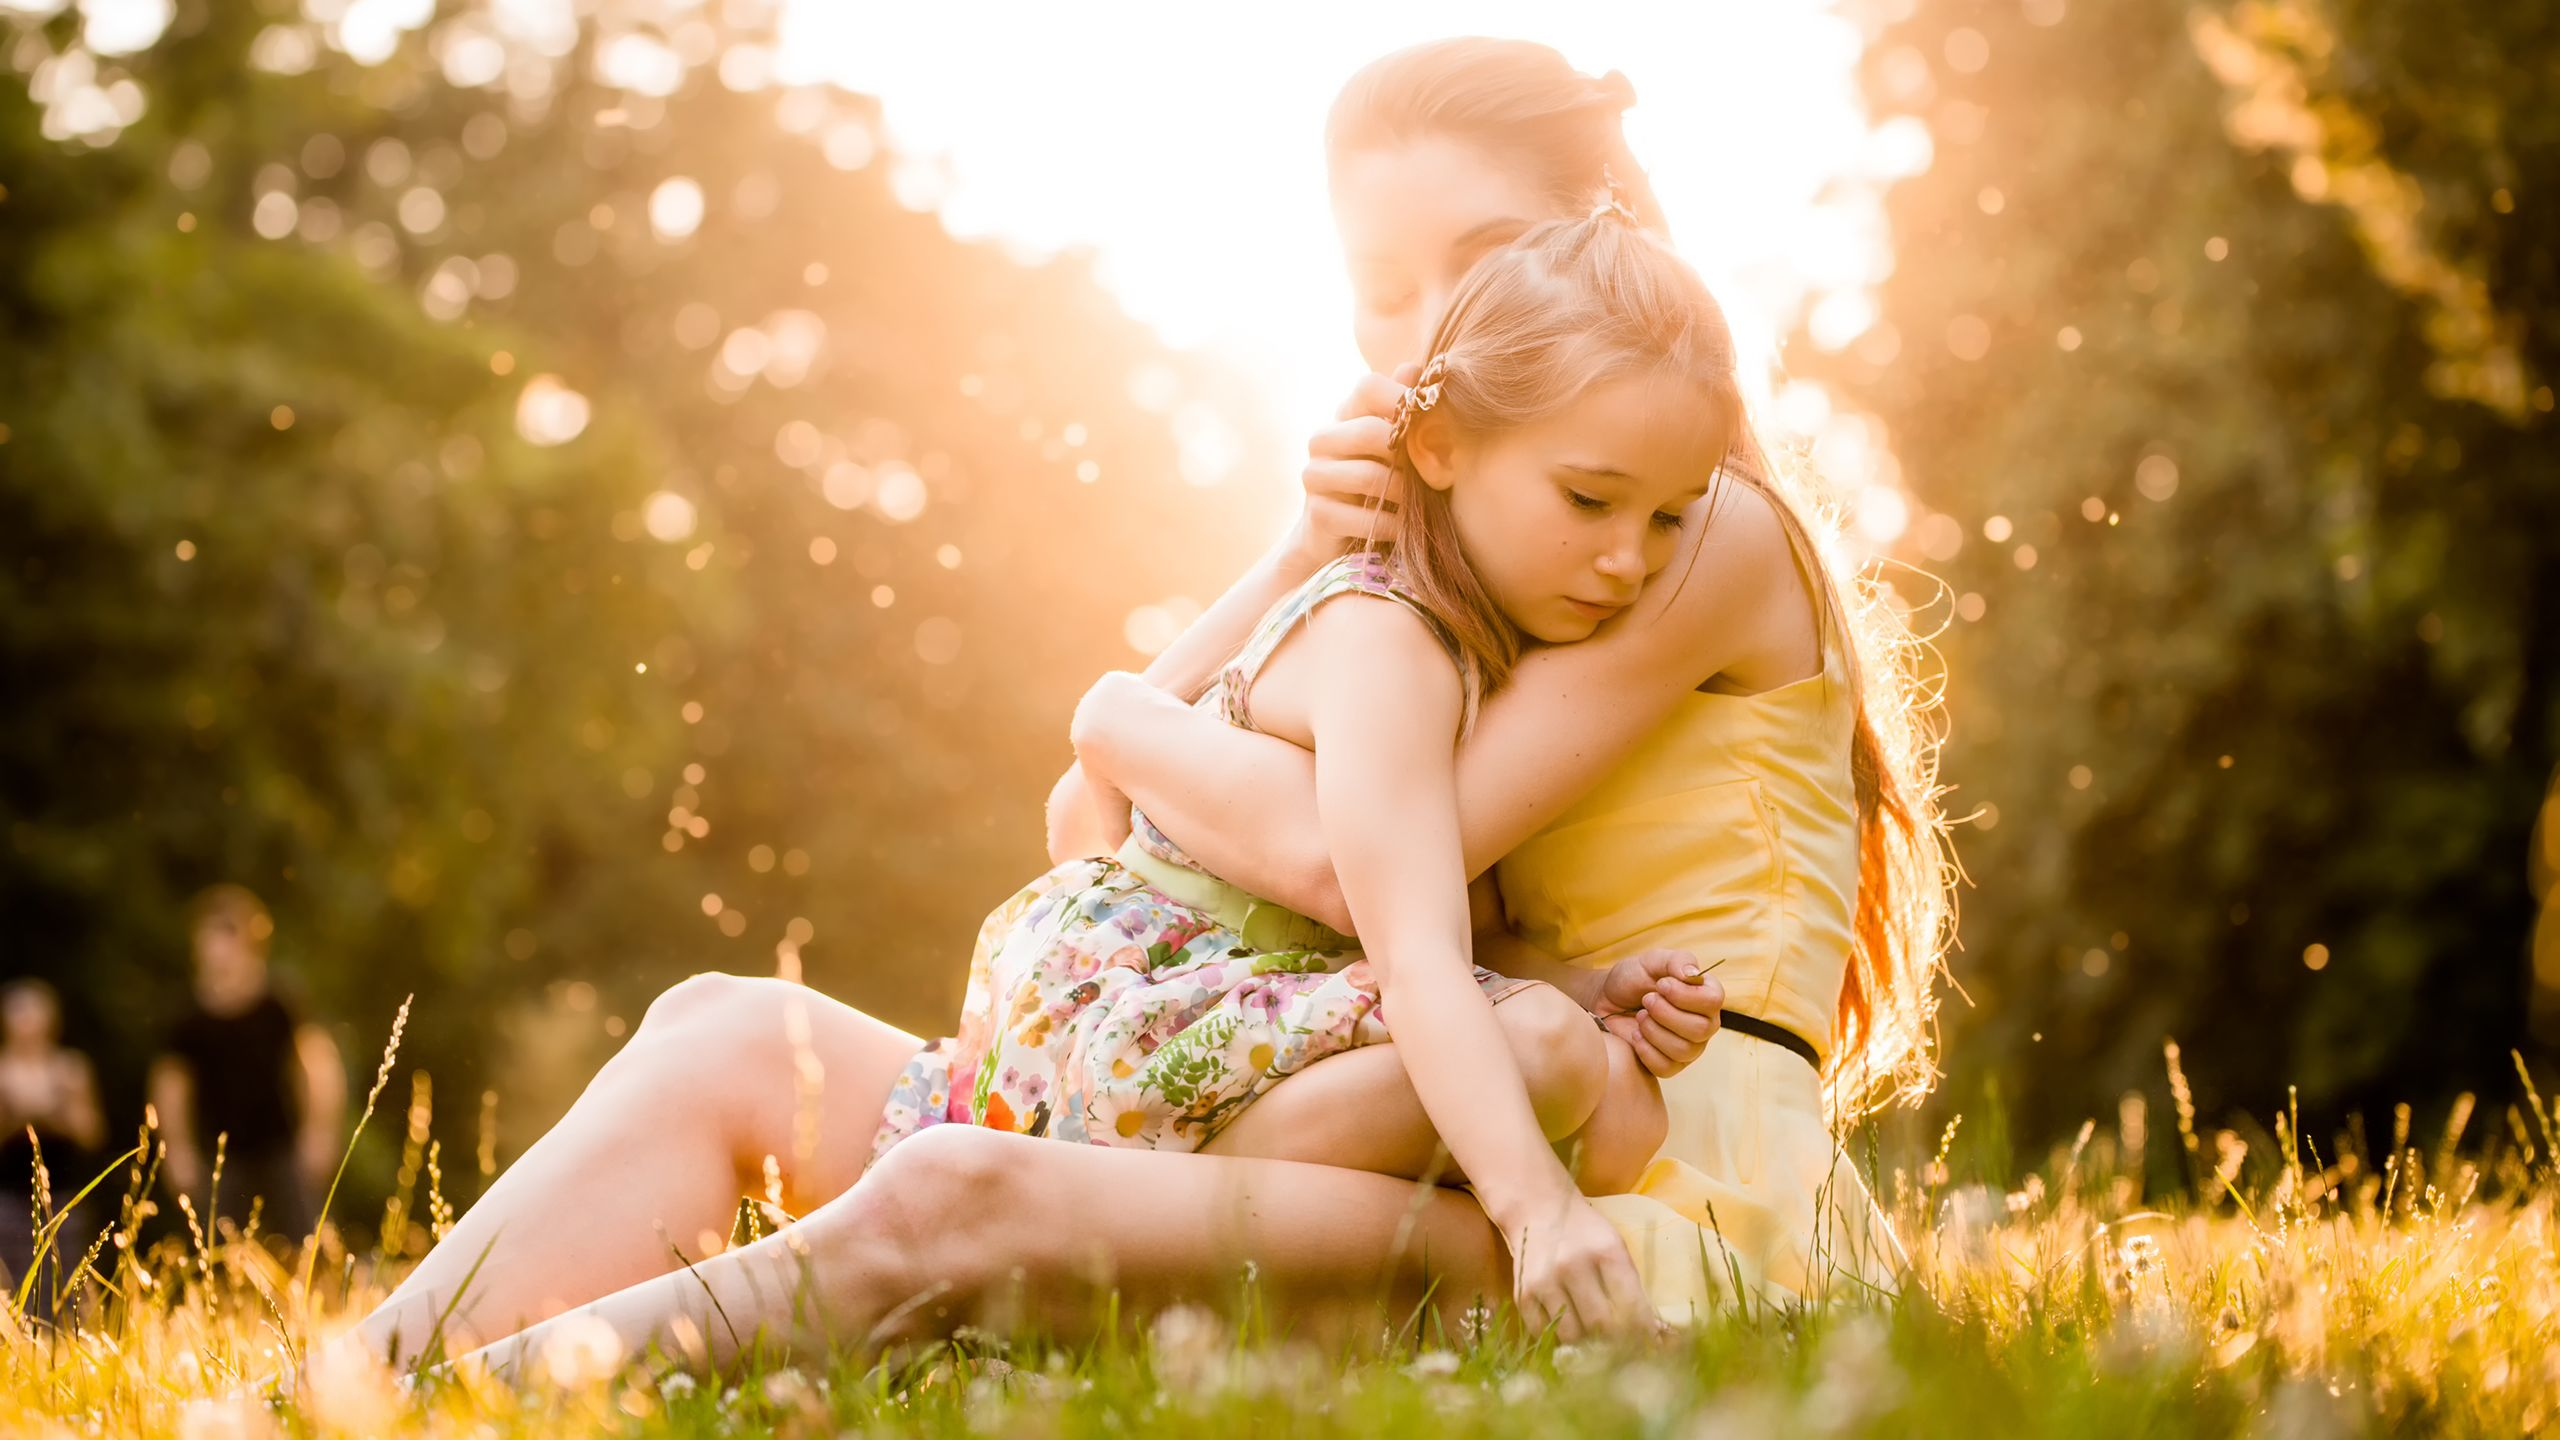 6 Ways To Soothe An Anxious Child